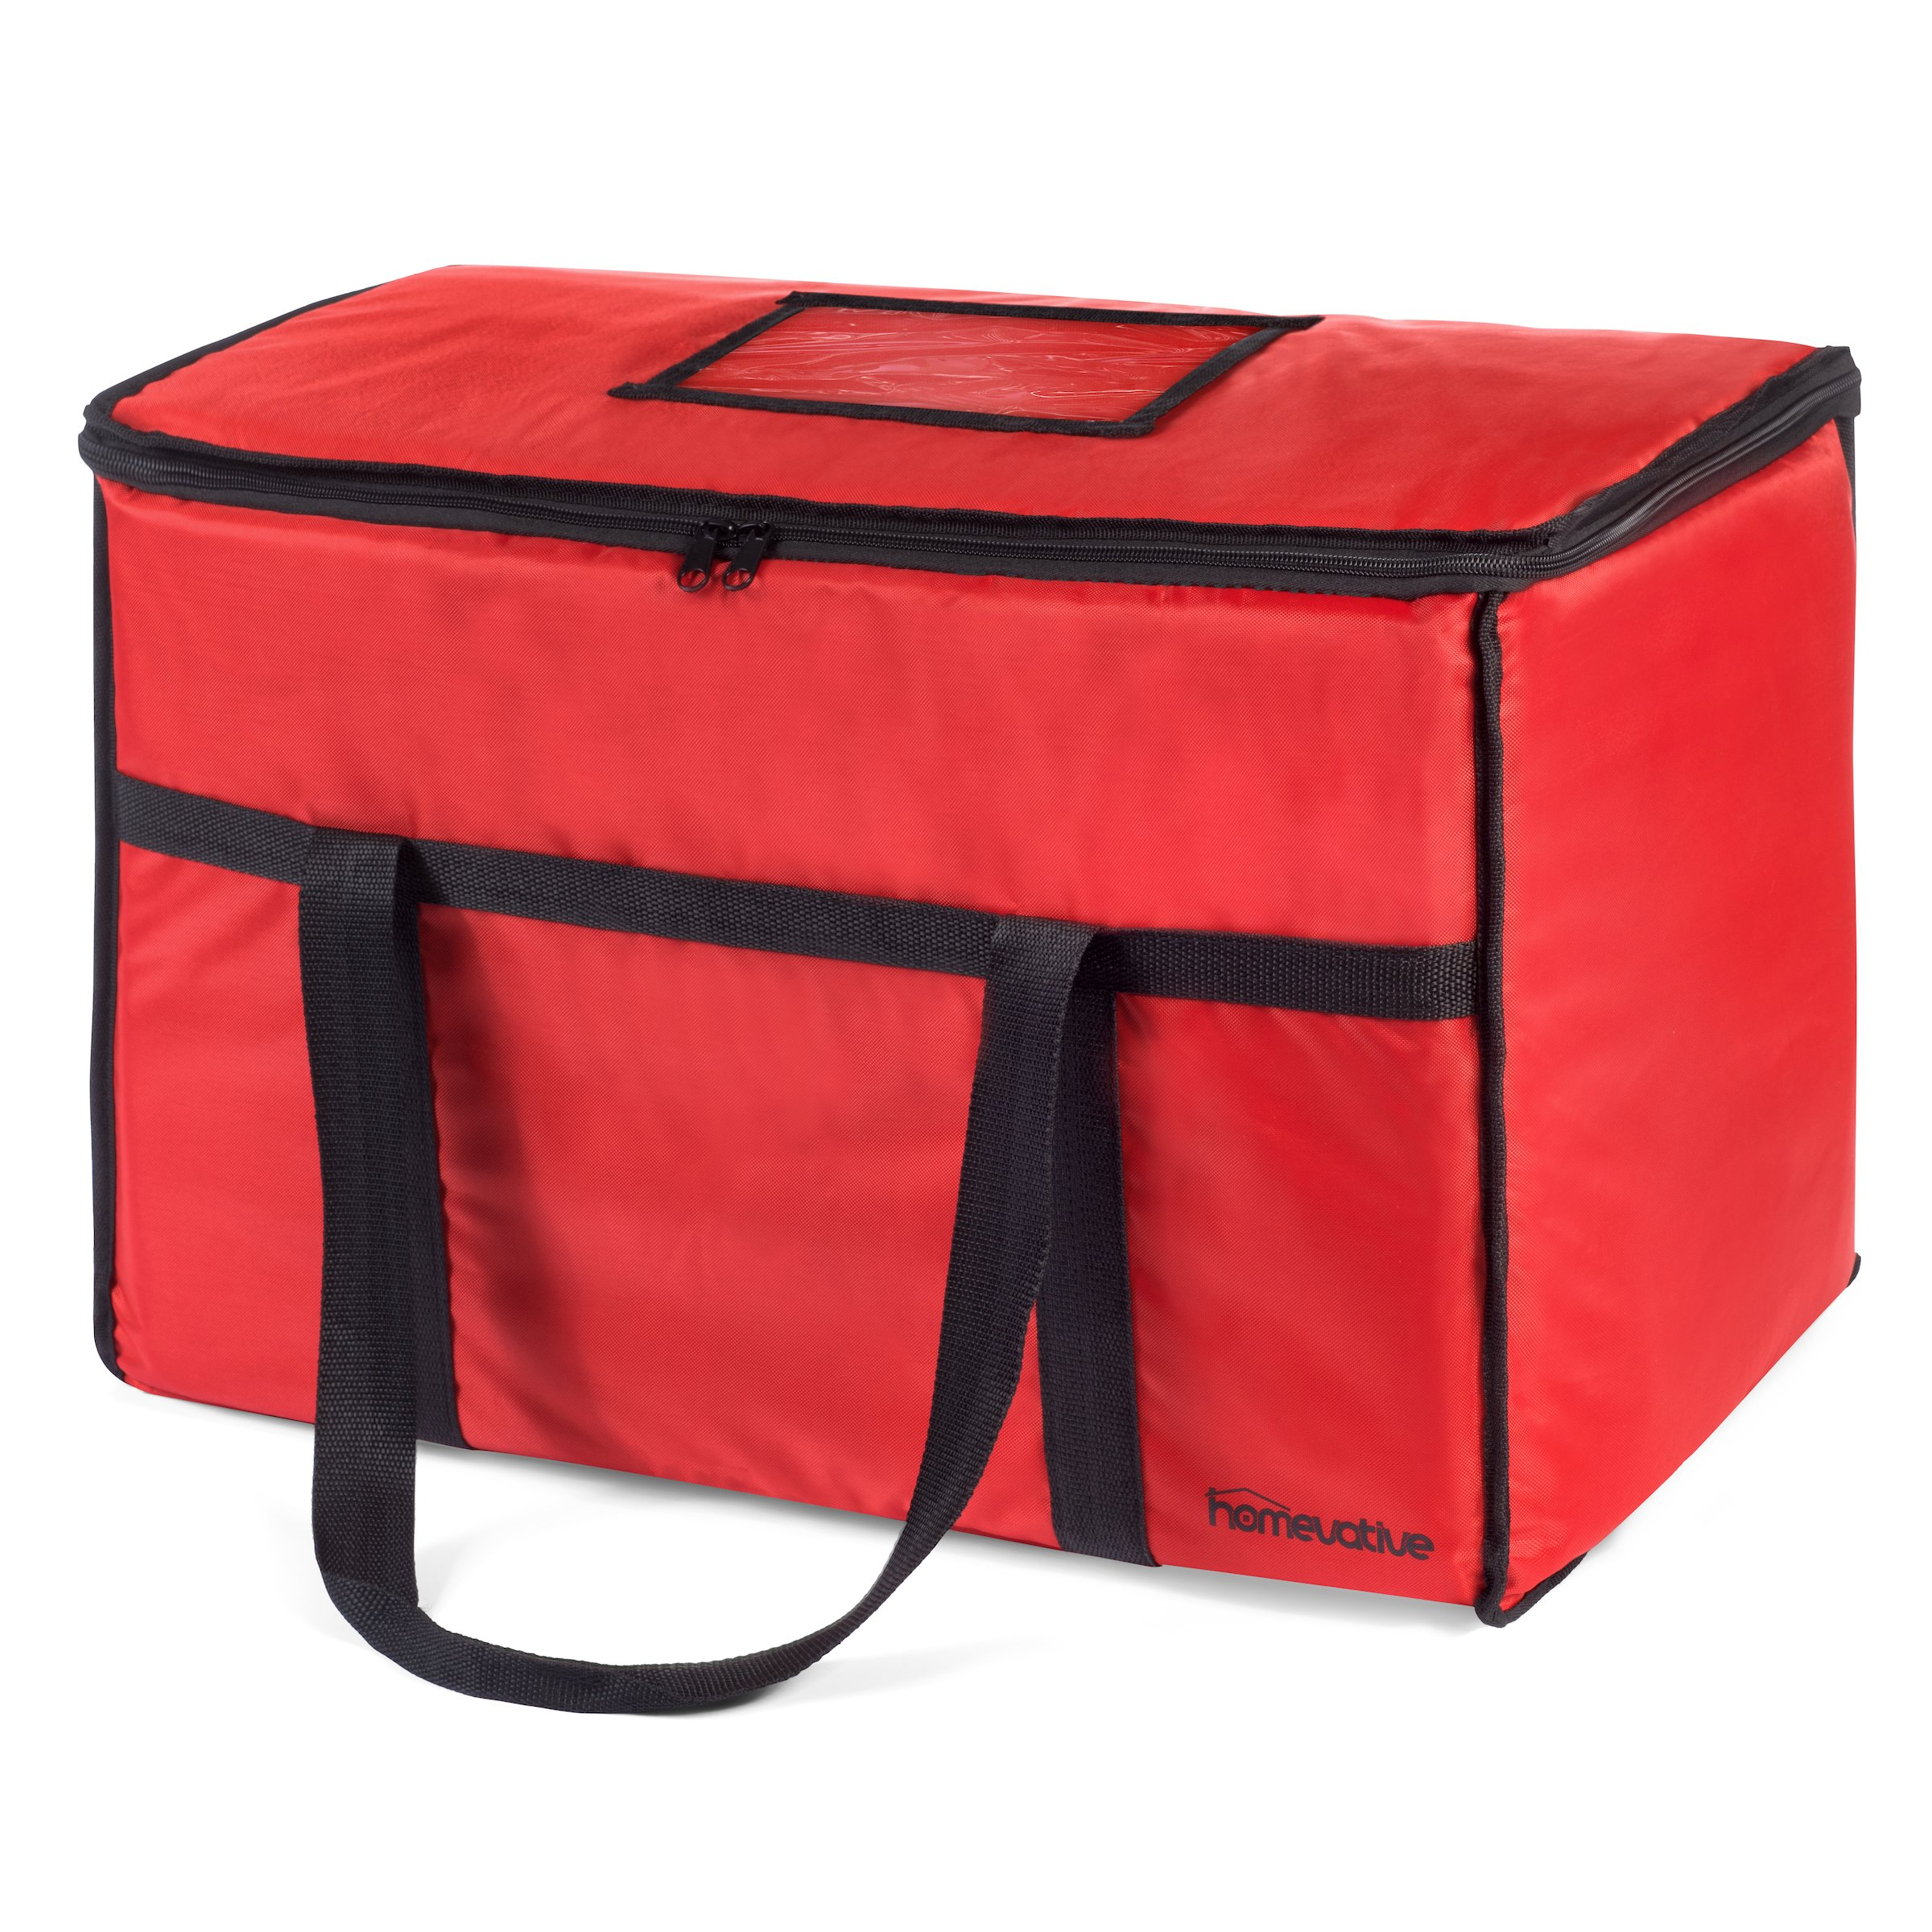 Homevative Nylon Insulated Food Delivery and Reusable Grocery Bag - For Catering, Restaurants, Delivery Drivers, Uber Eats, Grubhub, Postmates, and more.